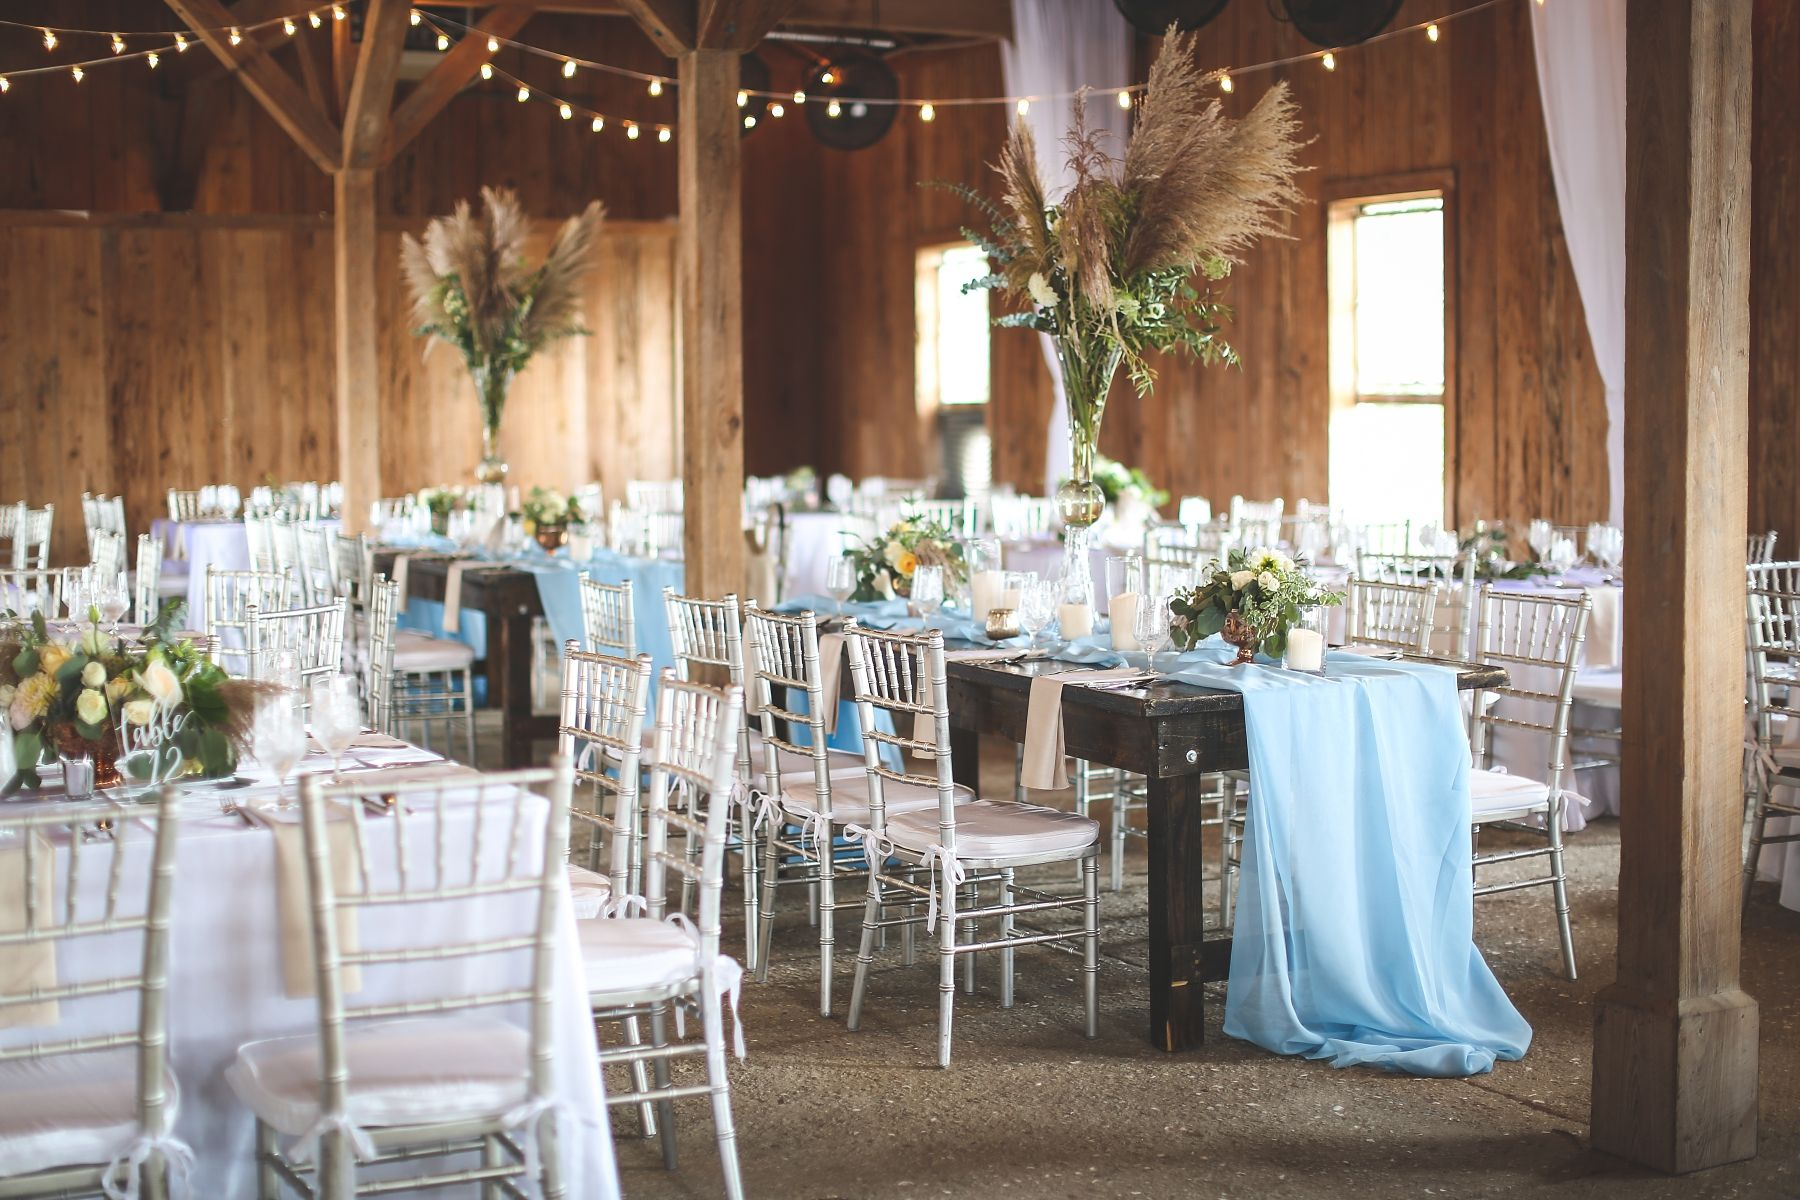 Pin on TakenAiken Boone Hall Plantation Wedding